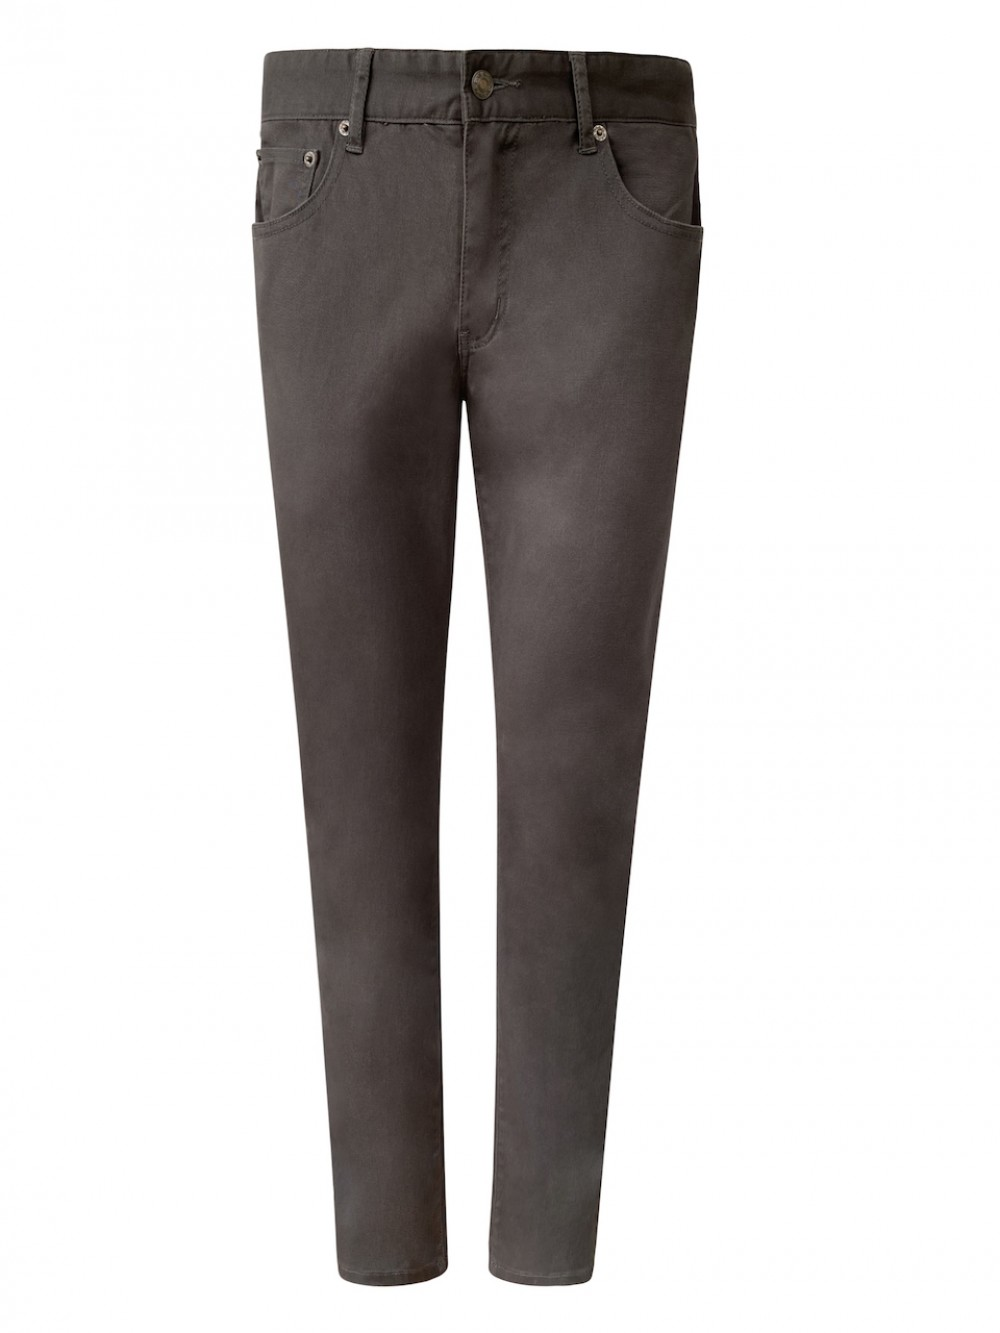 Mens Cotton Twill Chinos JSM309 charcoal grey